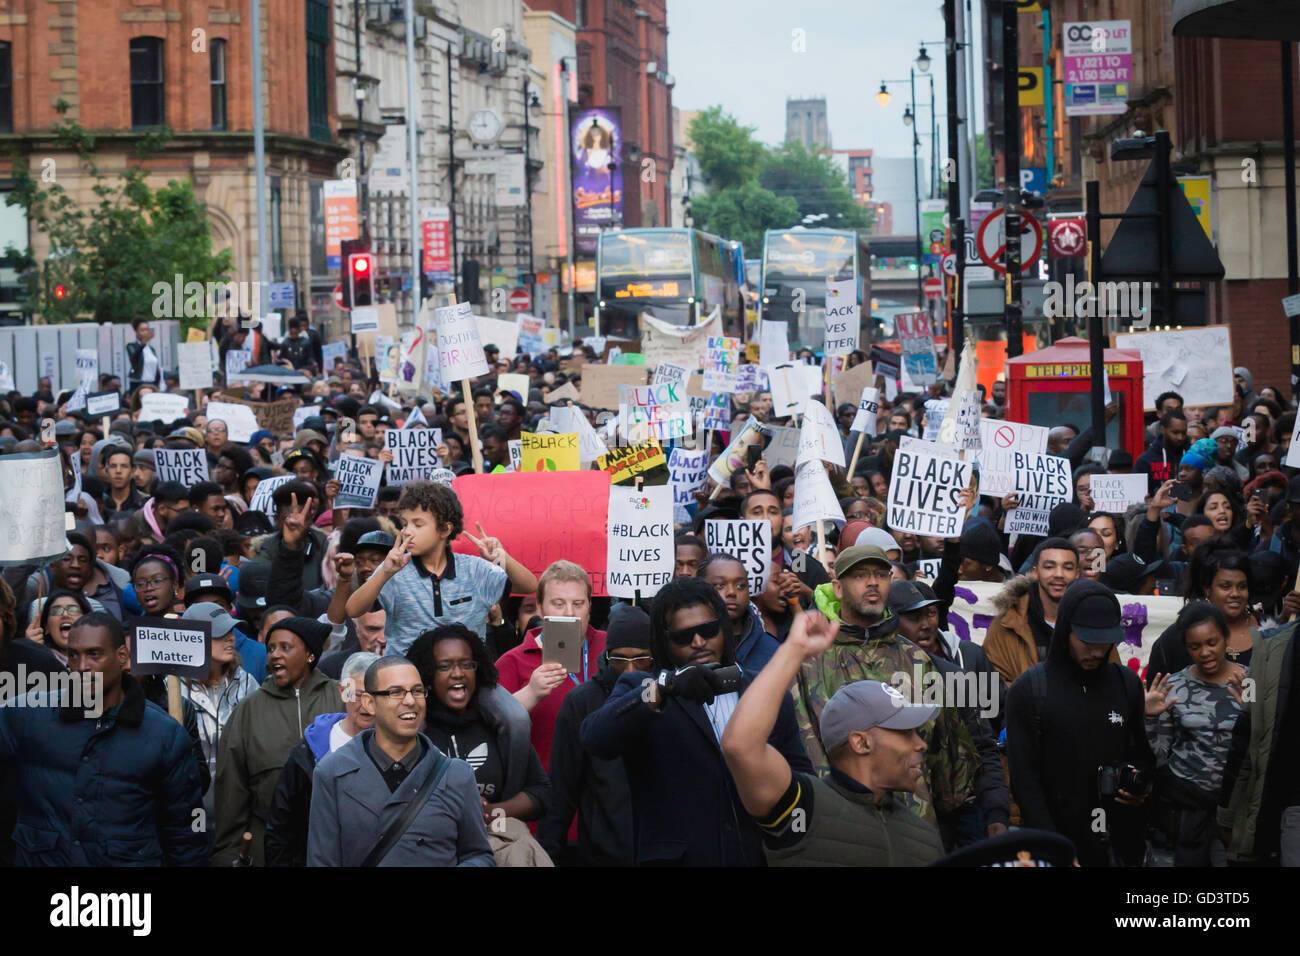 Manchester, UK. 11th July, 2016. Thosands of protesters march through Manchester in support for Black Lives Matter. - Stock Image